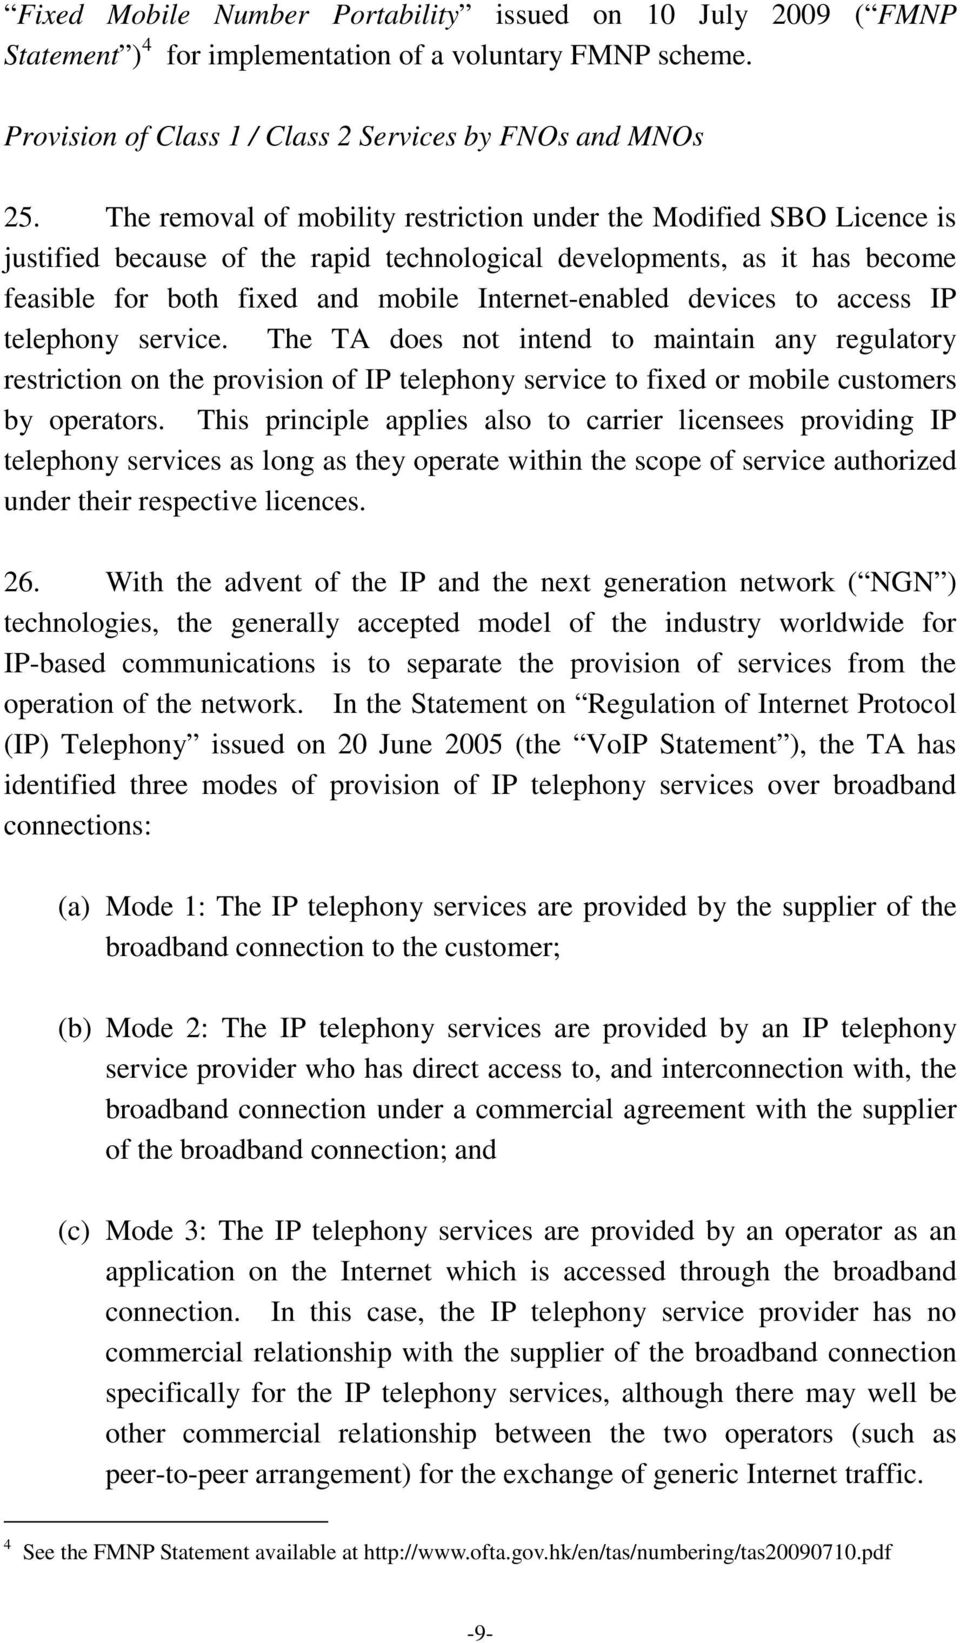 devices to access IP telephony service. The TA does not intend to maintain any regulatory restriction on the provision of IP telephony service to fixed or mobile customers by operators.